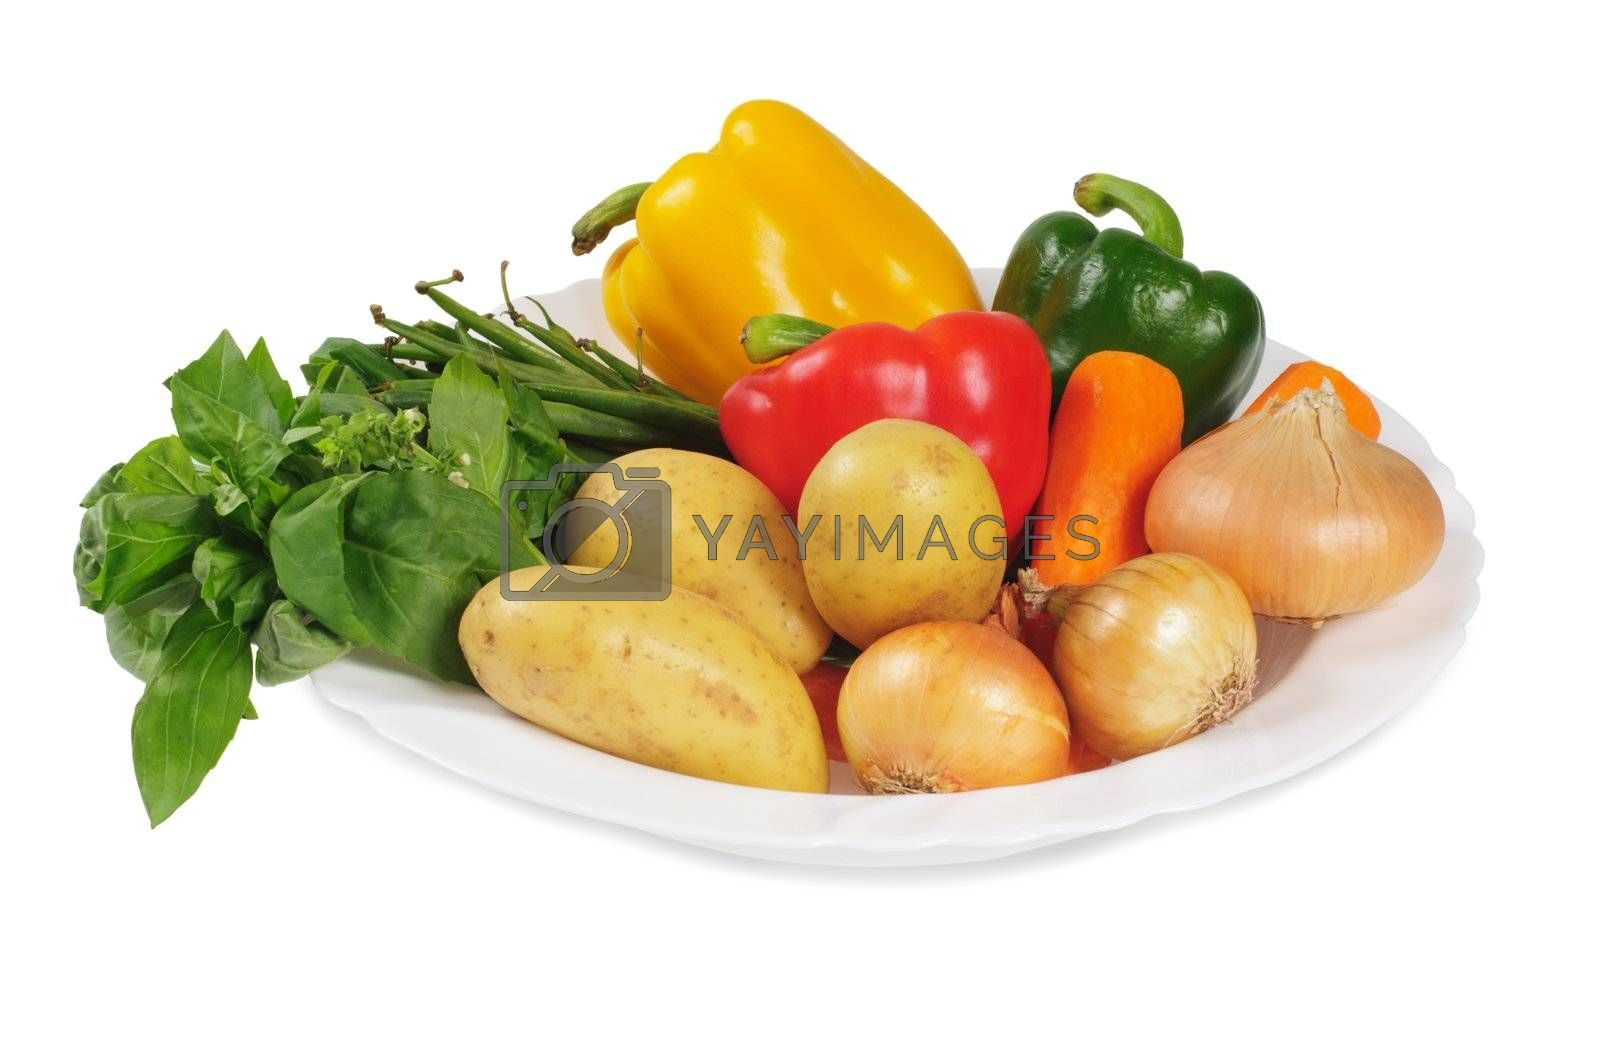 Plate with vegetables for a salad. Bell peppers, potatoes, onions, carrots and herbs. Isolated on white.